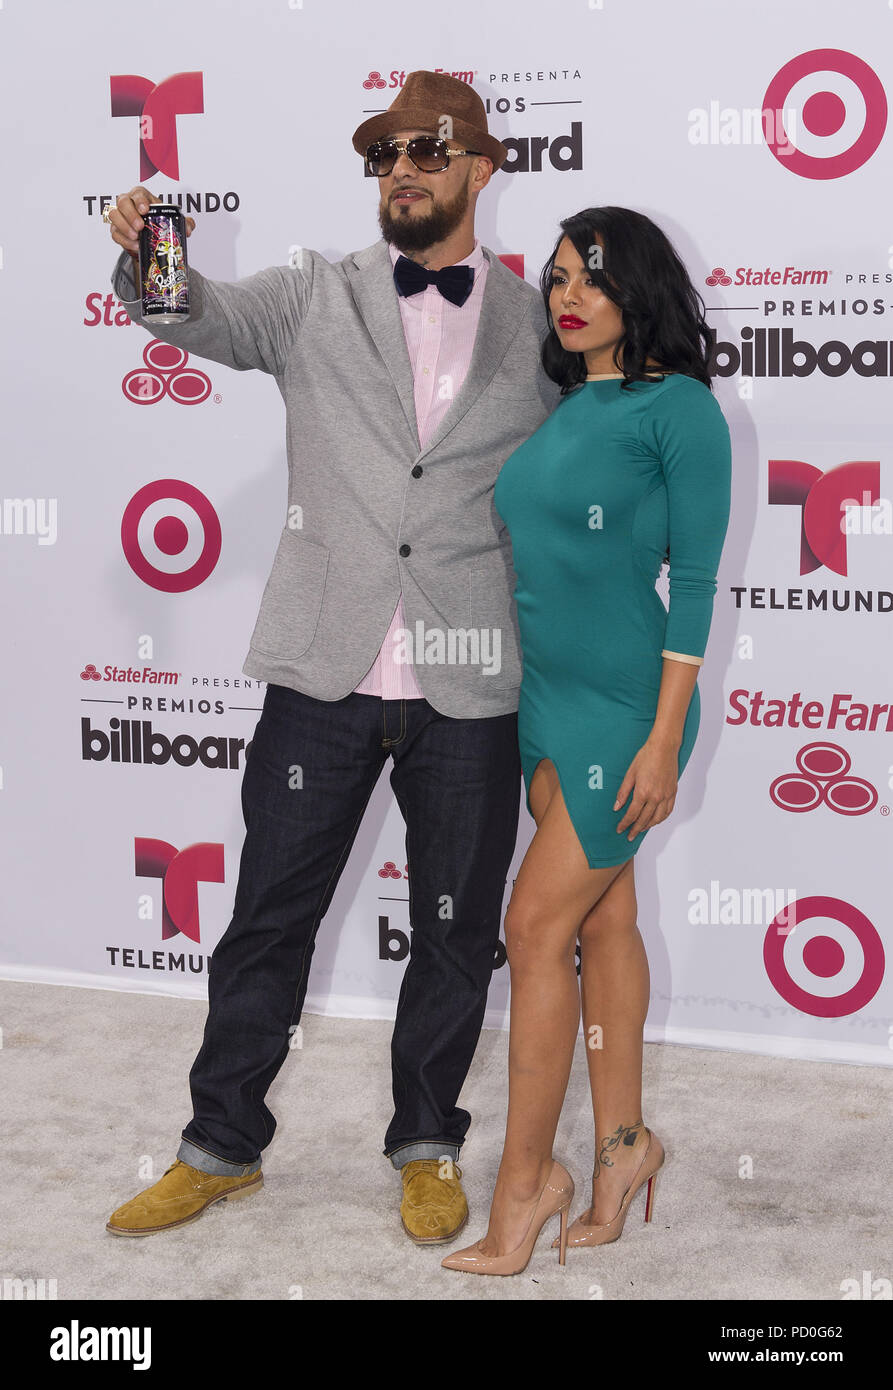 MIAMI, FL - APRIL 30:  Don Dinero and Luna Star arrives at 2015 Billboard Latin Music Awards presented by State Farm on Telemundo at Bank United Center on April 30, 2015 in Miami, Florida   People:  Don Dinero and Luna Star - Stock Image